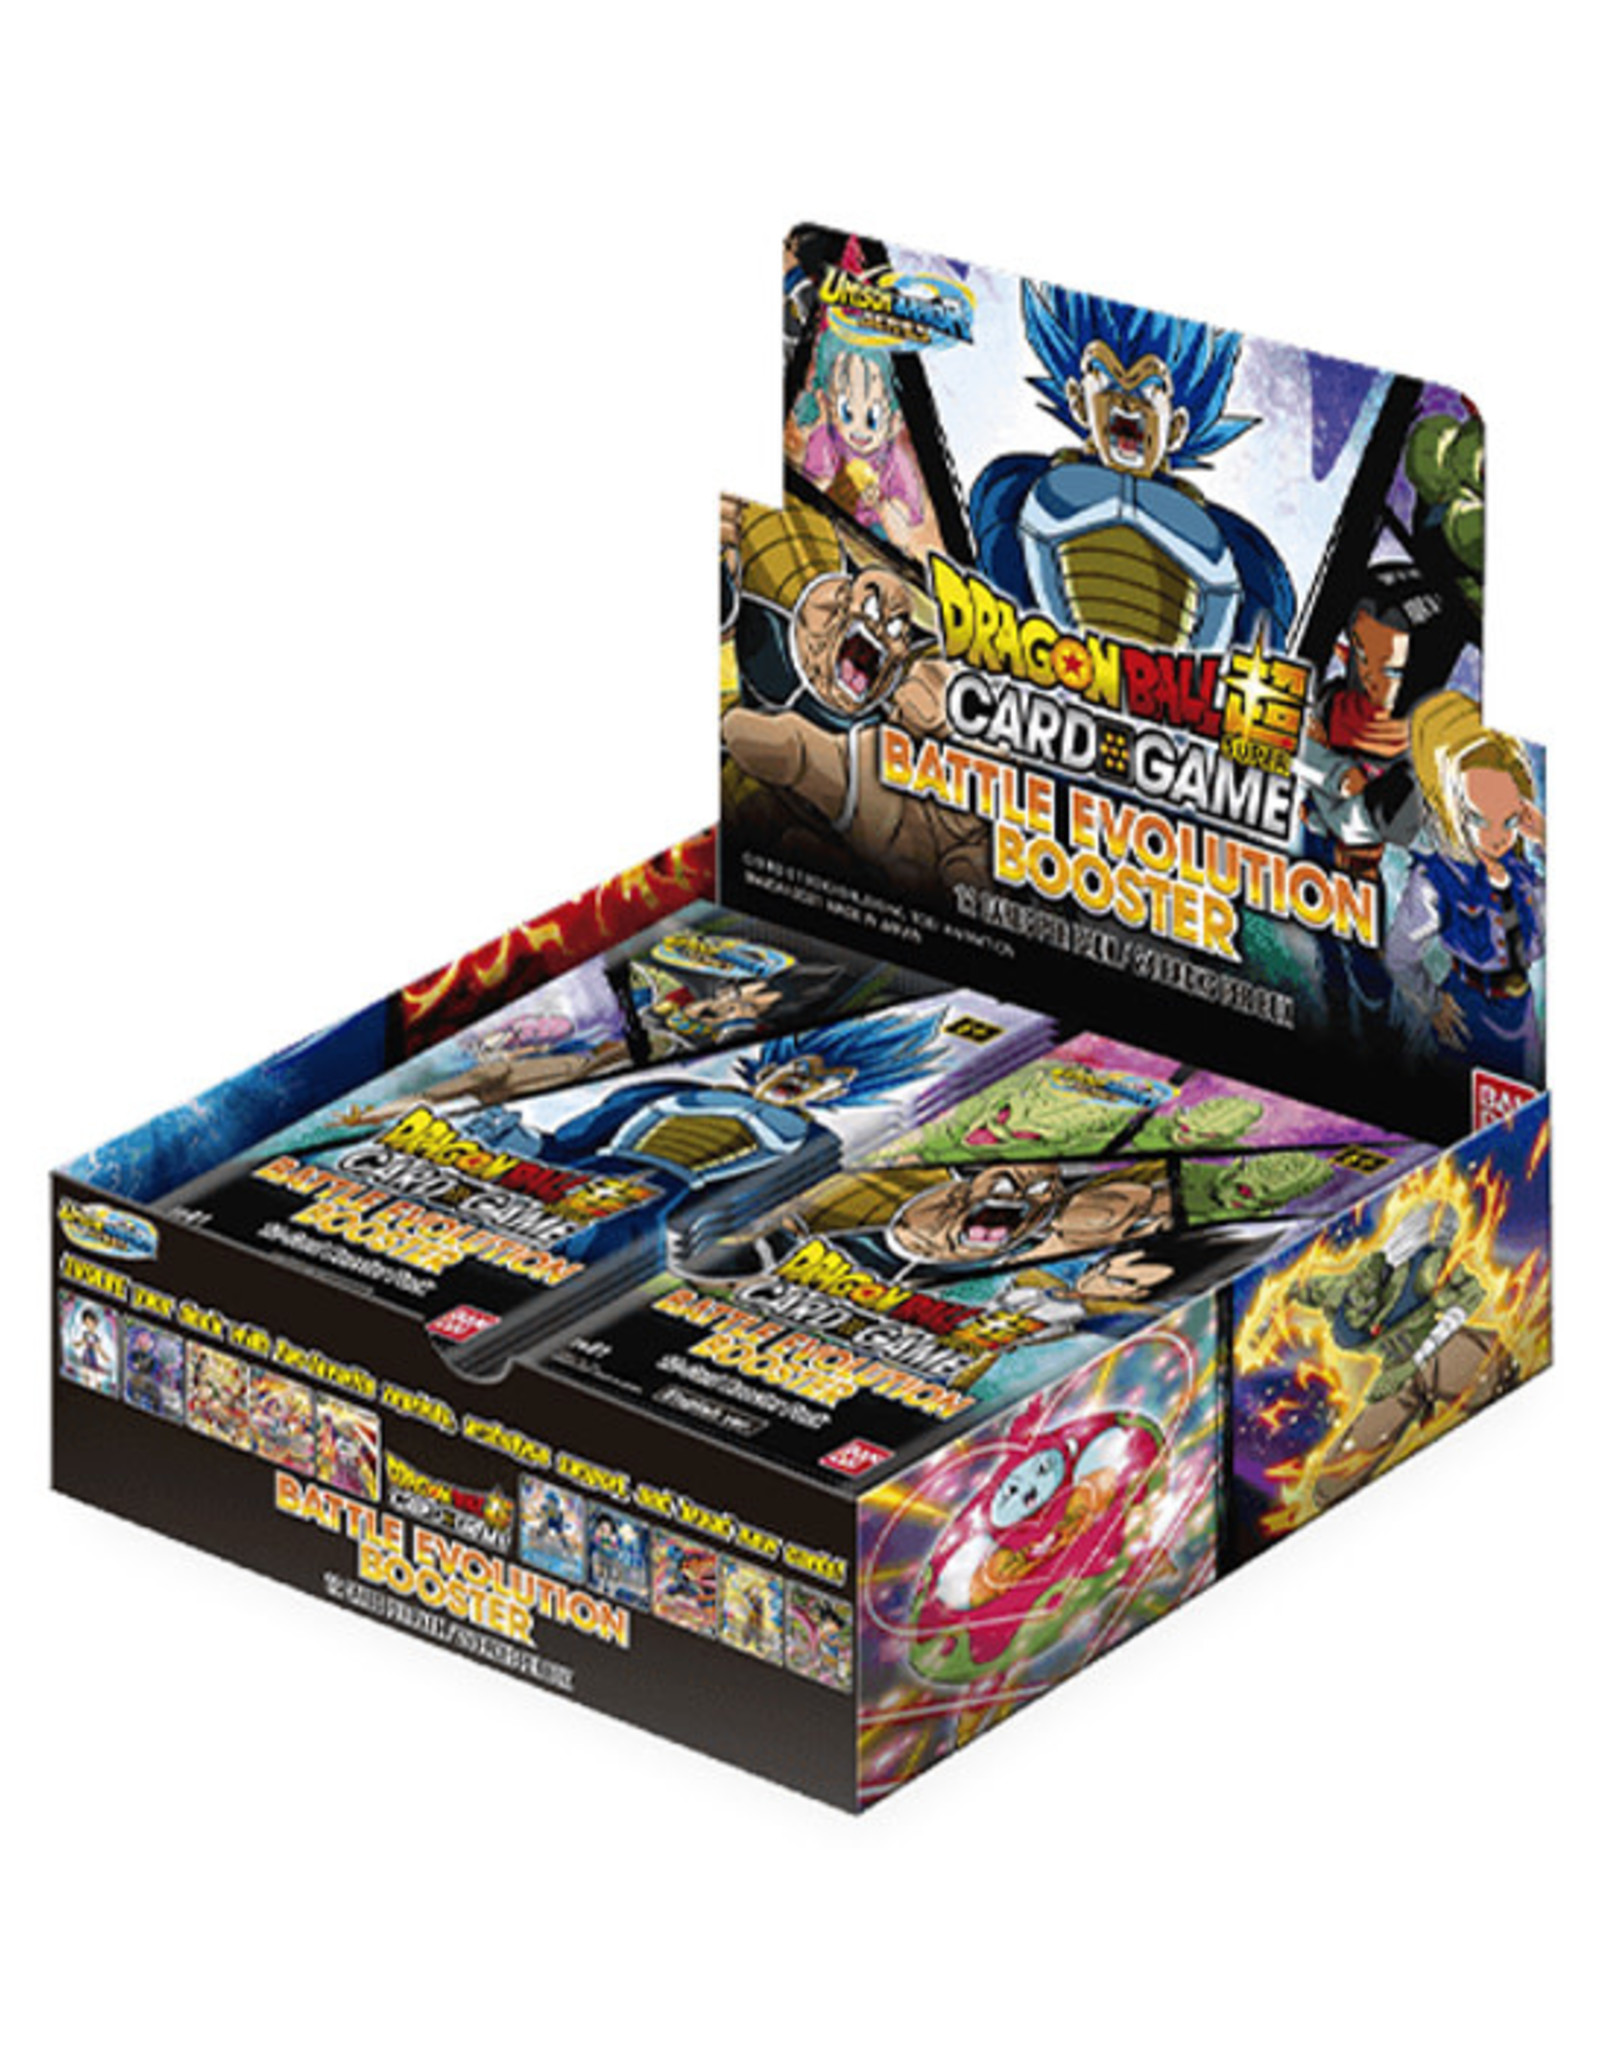 Bandai Dragon Ball Super: The Card Game - Battle Evolution - Booster Box